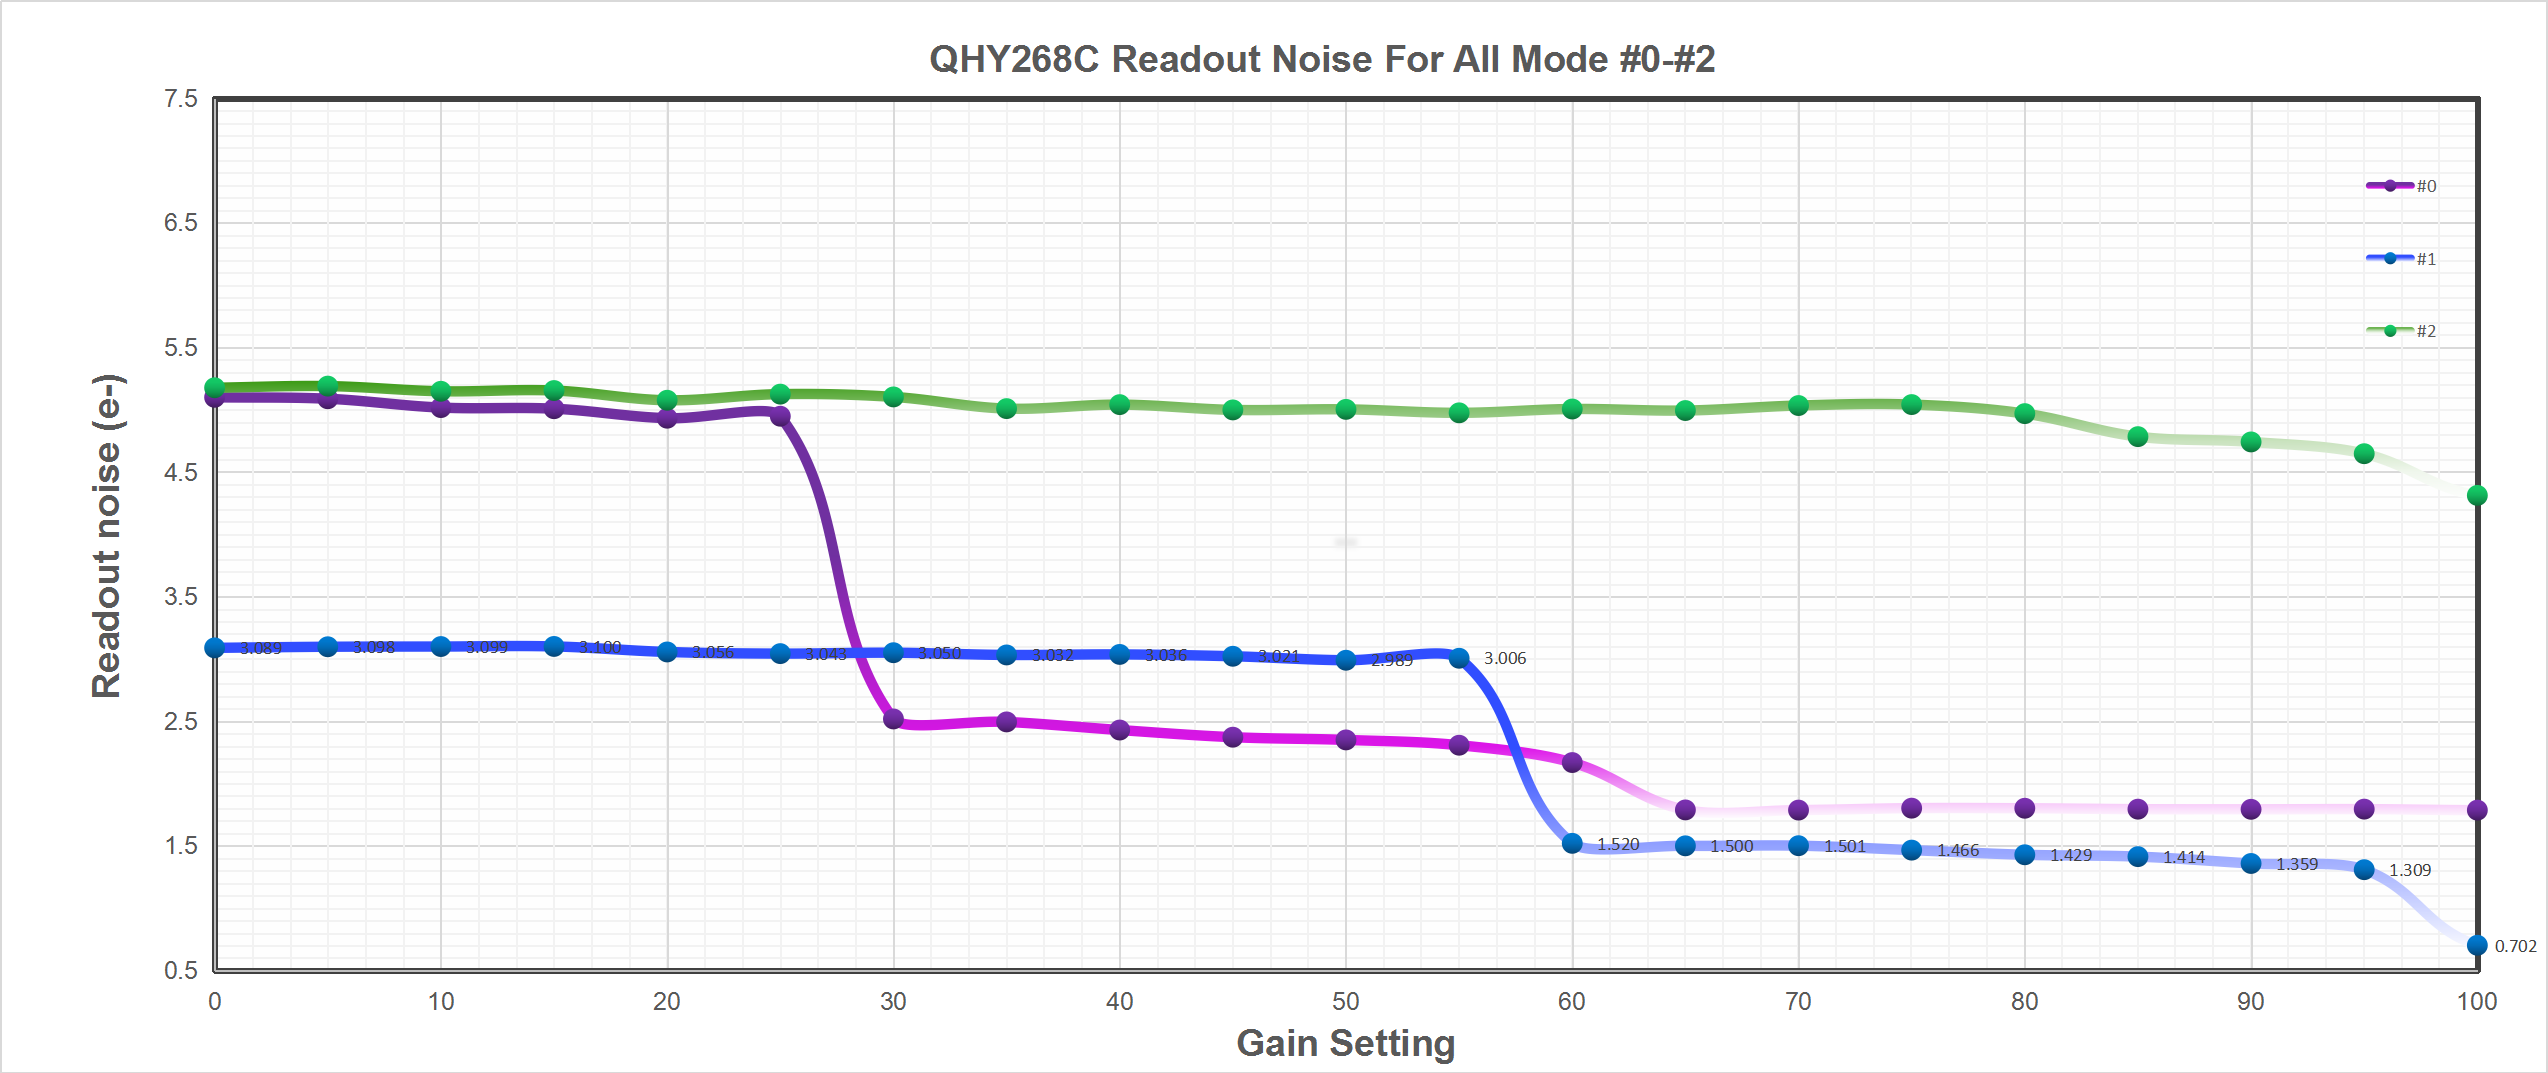 QHY268C Readout Noise For All Mode